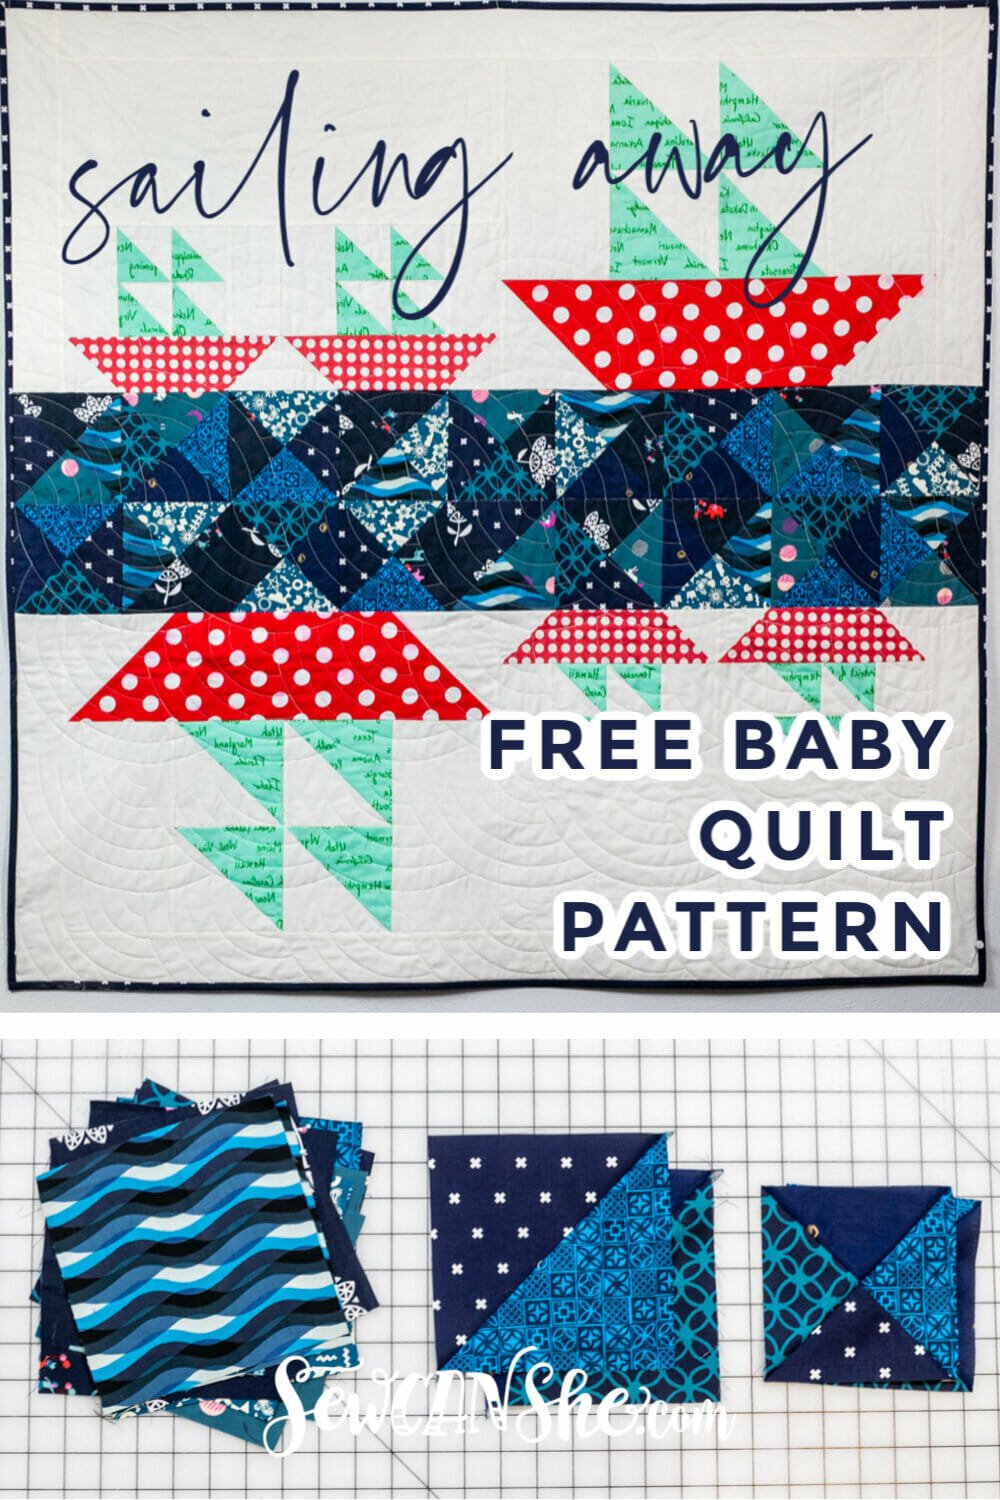 free+baby+quilt+pattern+with+sailboat+blocks.jpg